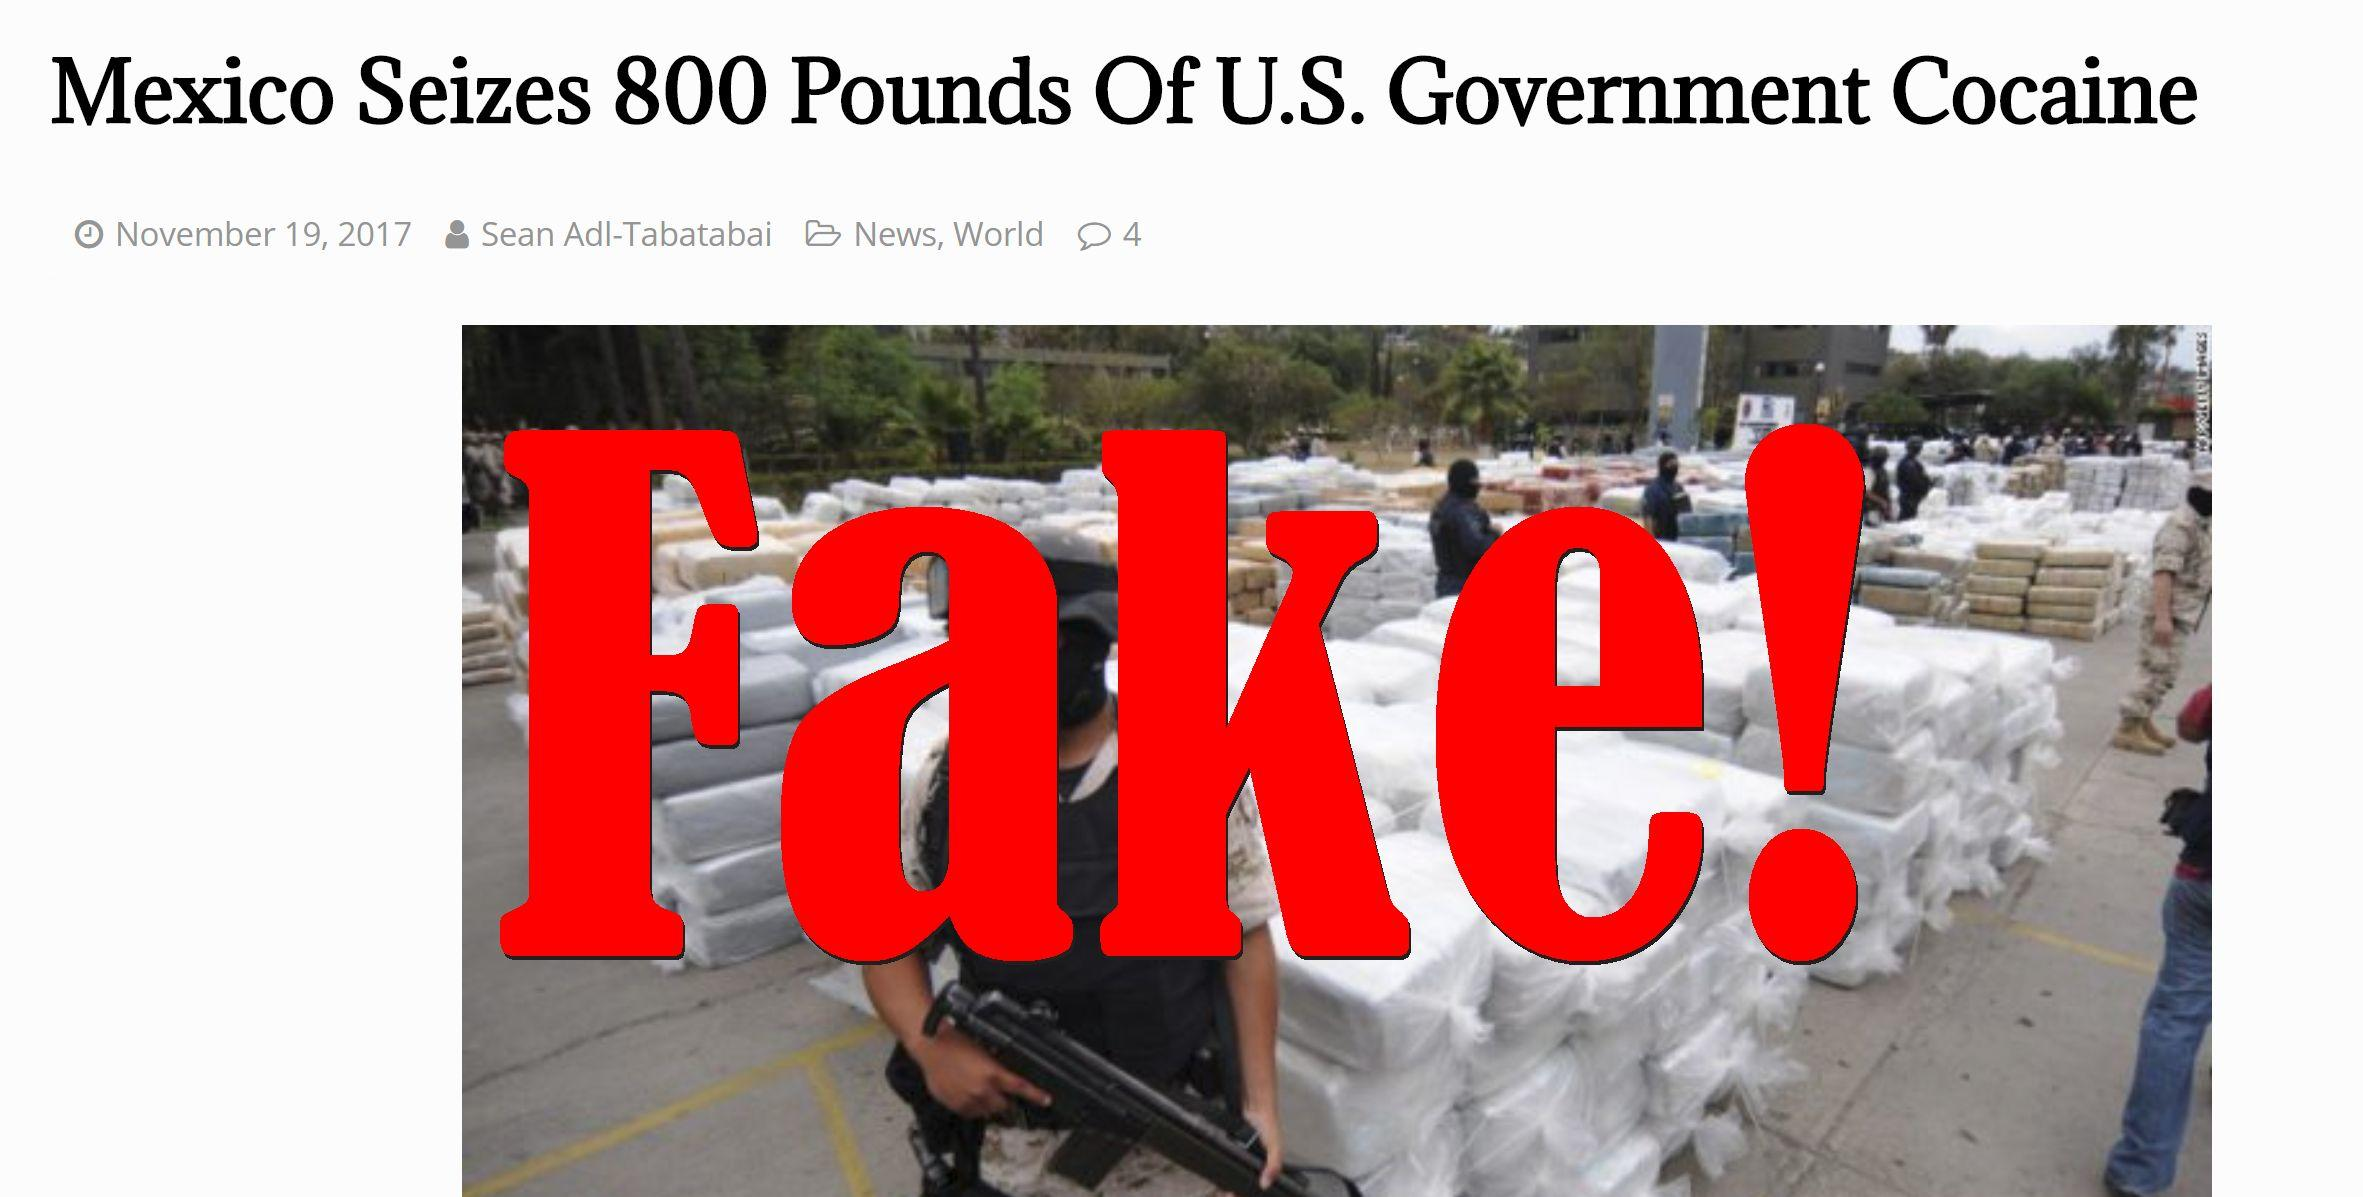 Fake News: Mexico Did NOT Seize 800 Pounds Of U.S. Government Cocaine